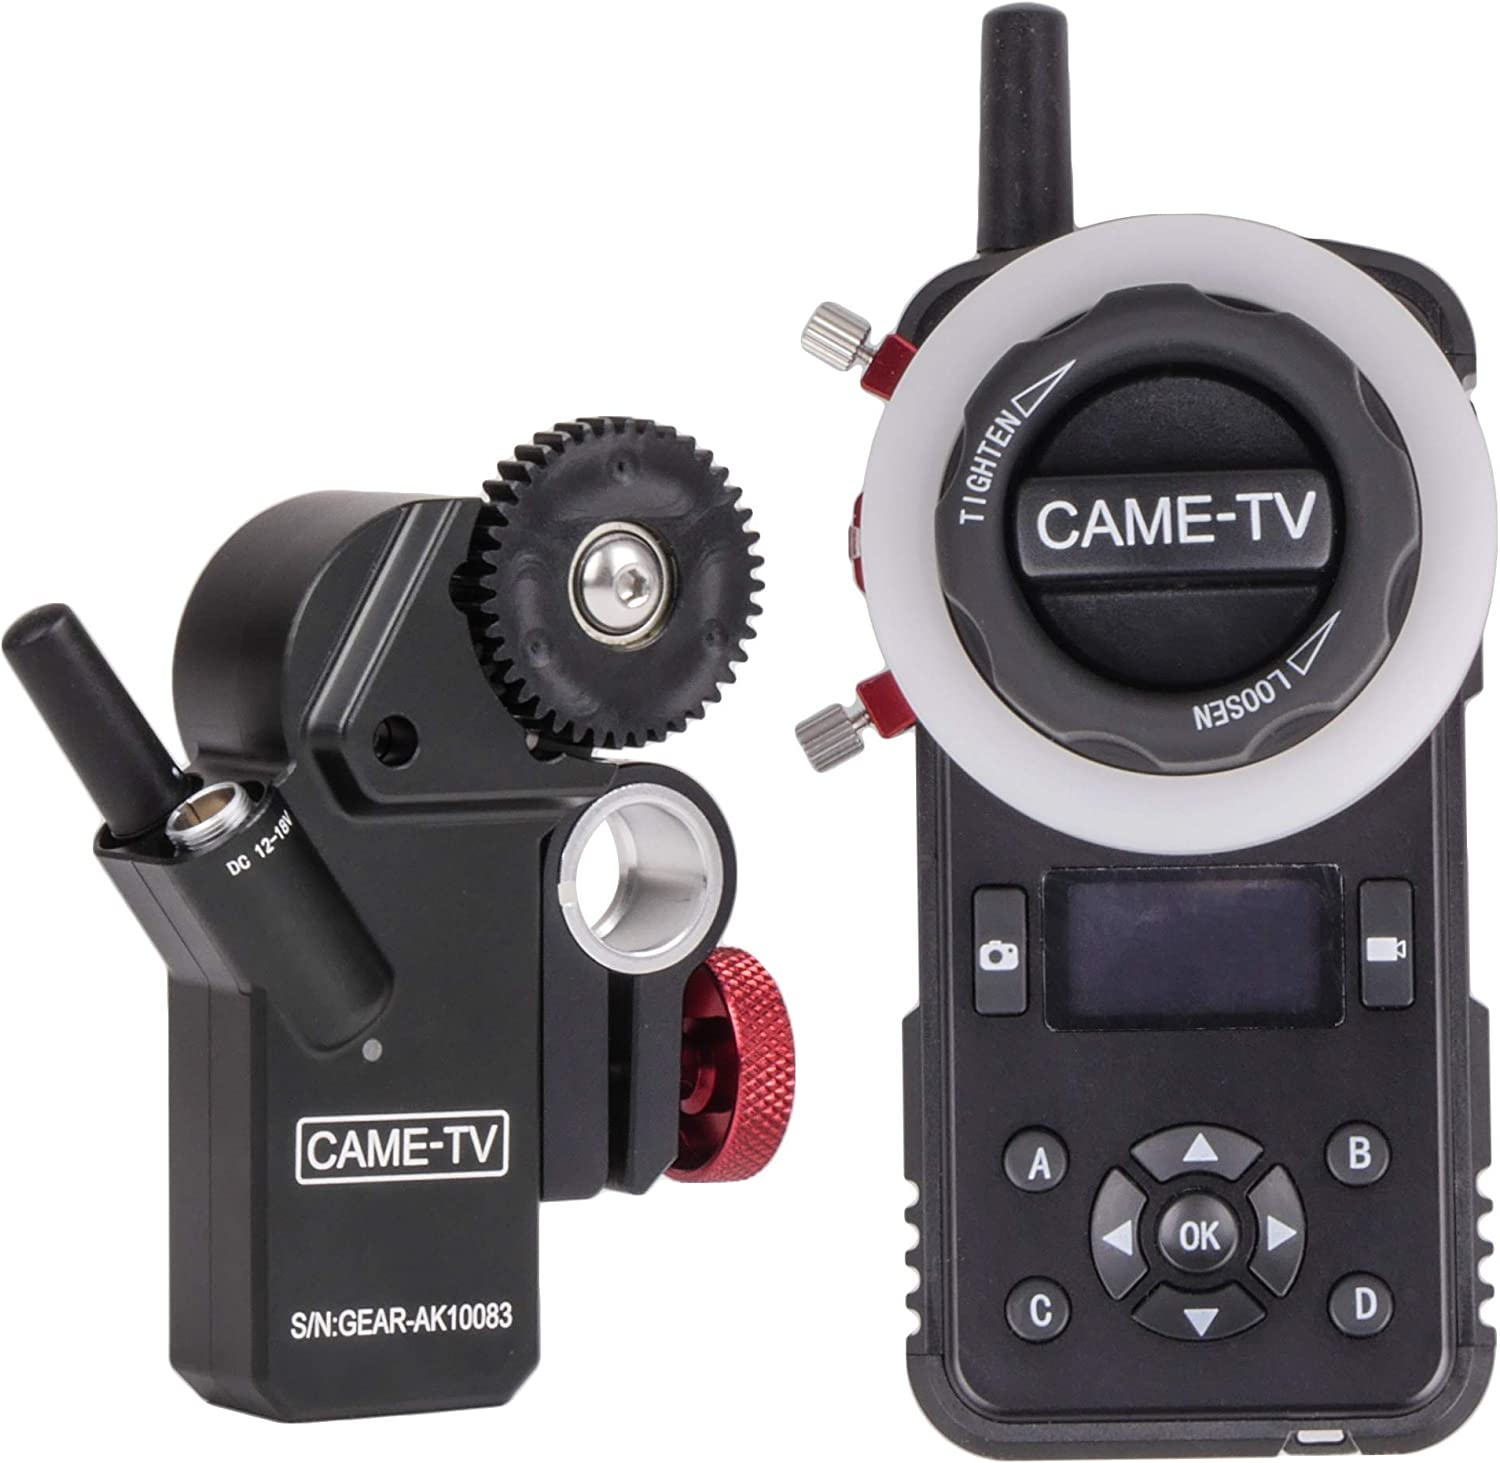 Came-TV Astral Max 59% OFF High-Torque Wireless Follow Max 85% OFF Con Focus Camera with